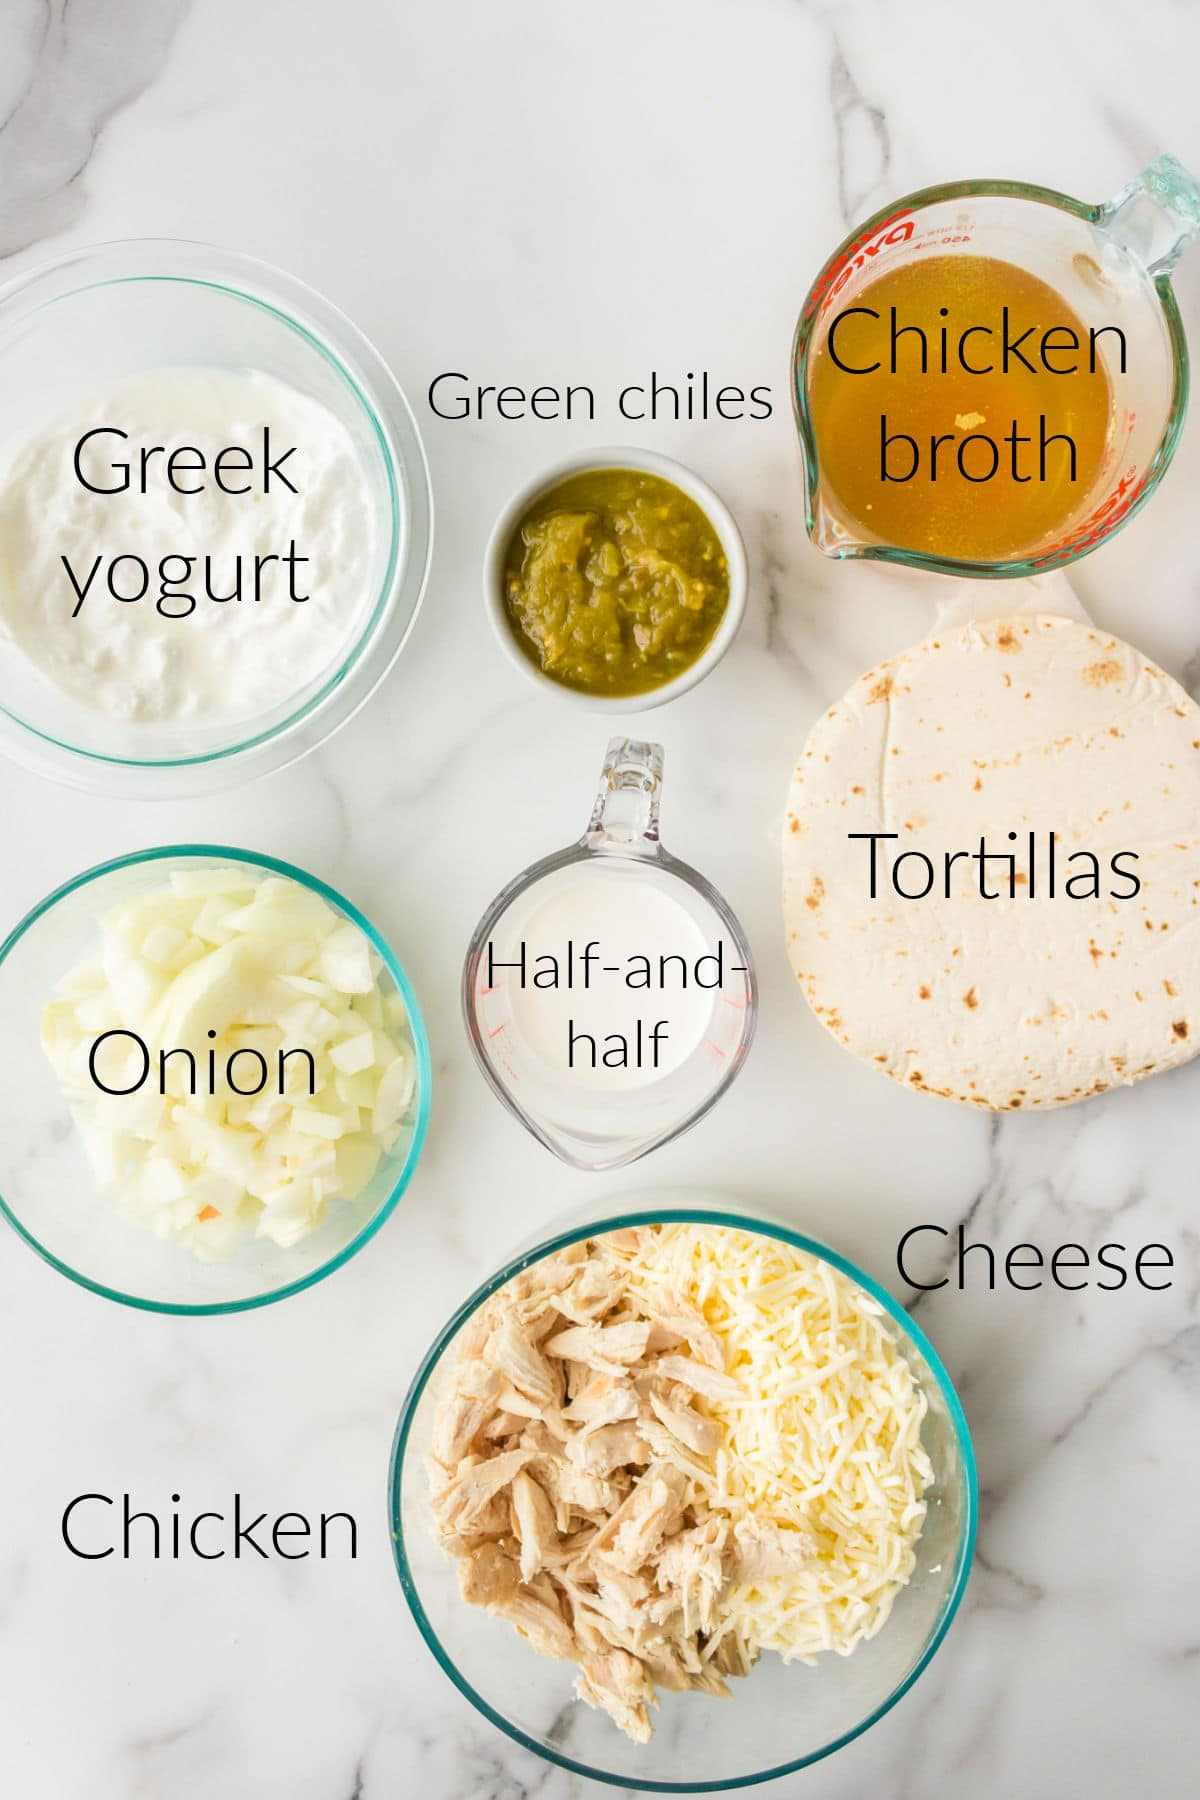 White chicken enchilada ingredients in bowls with labels on the photo.